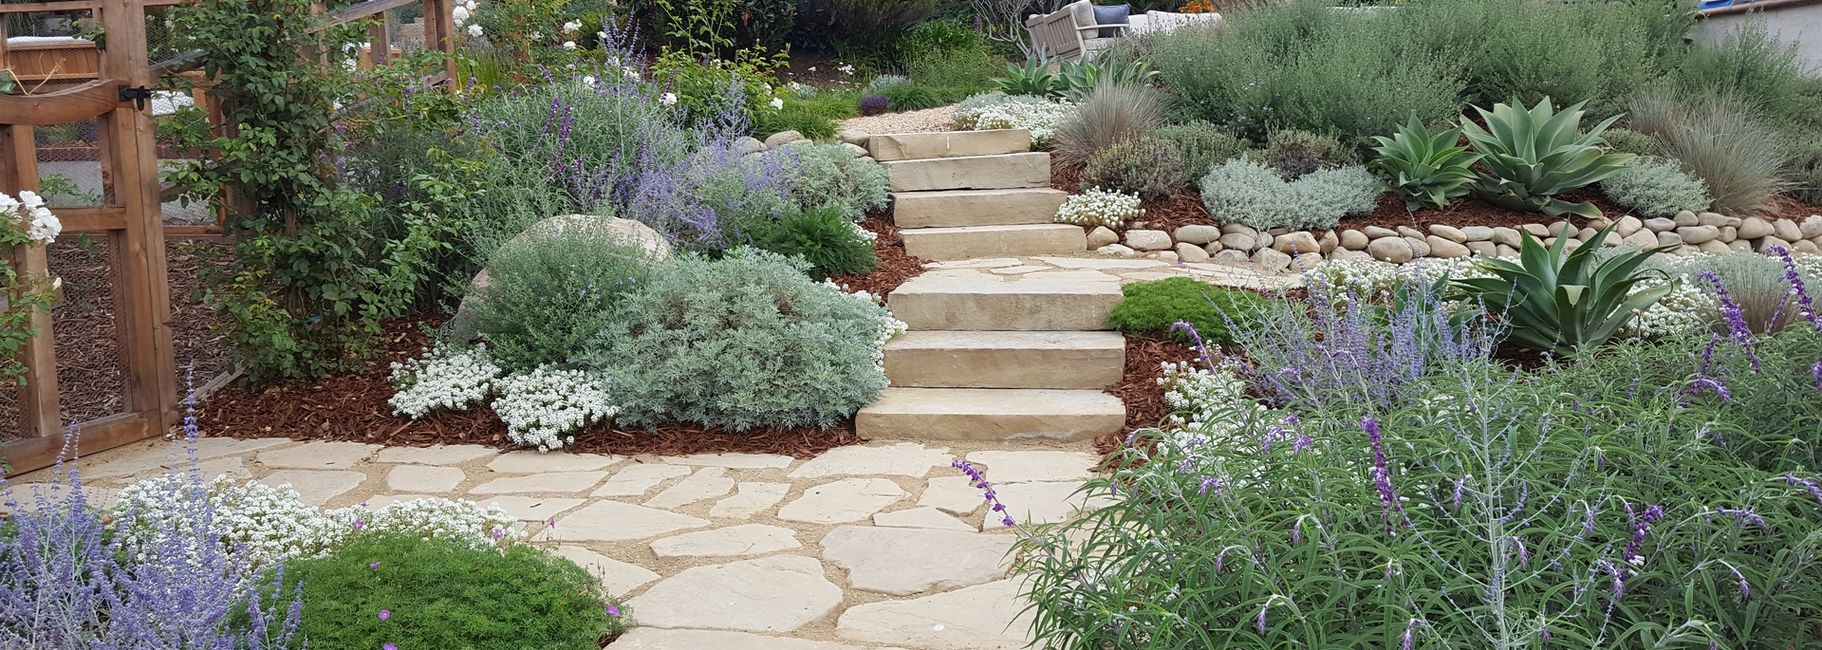 Drought tolerant landscaping using imported stone and water wise plants